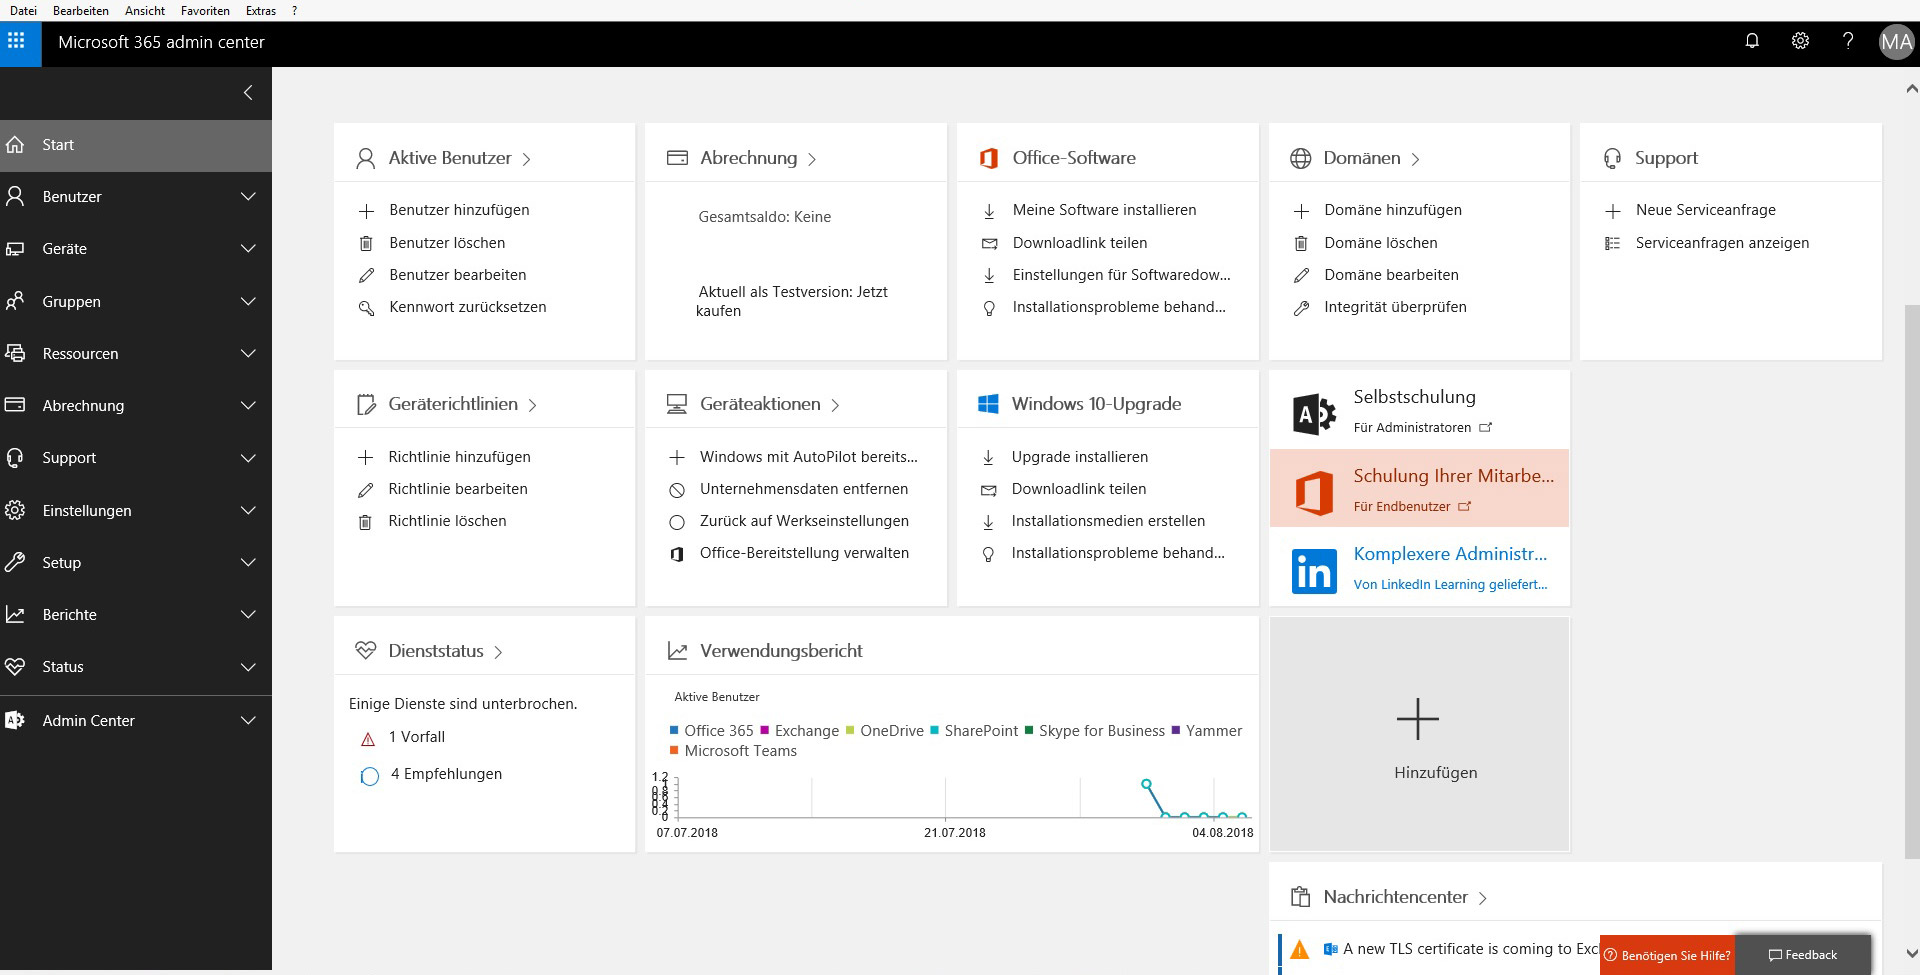 Office 365 Admin Center